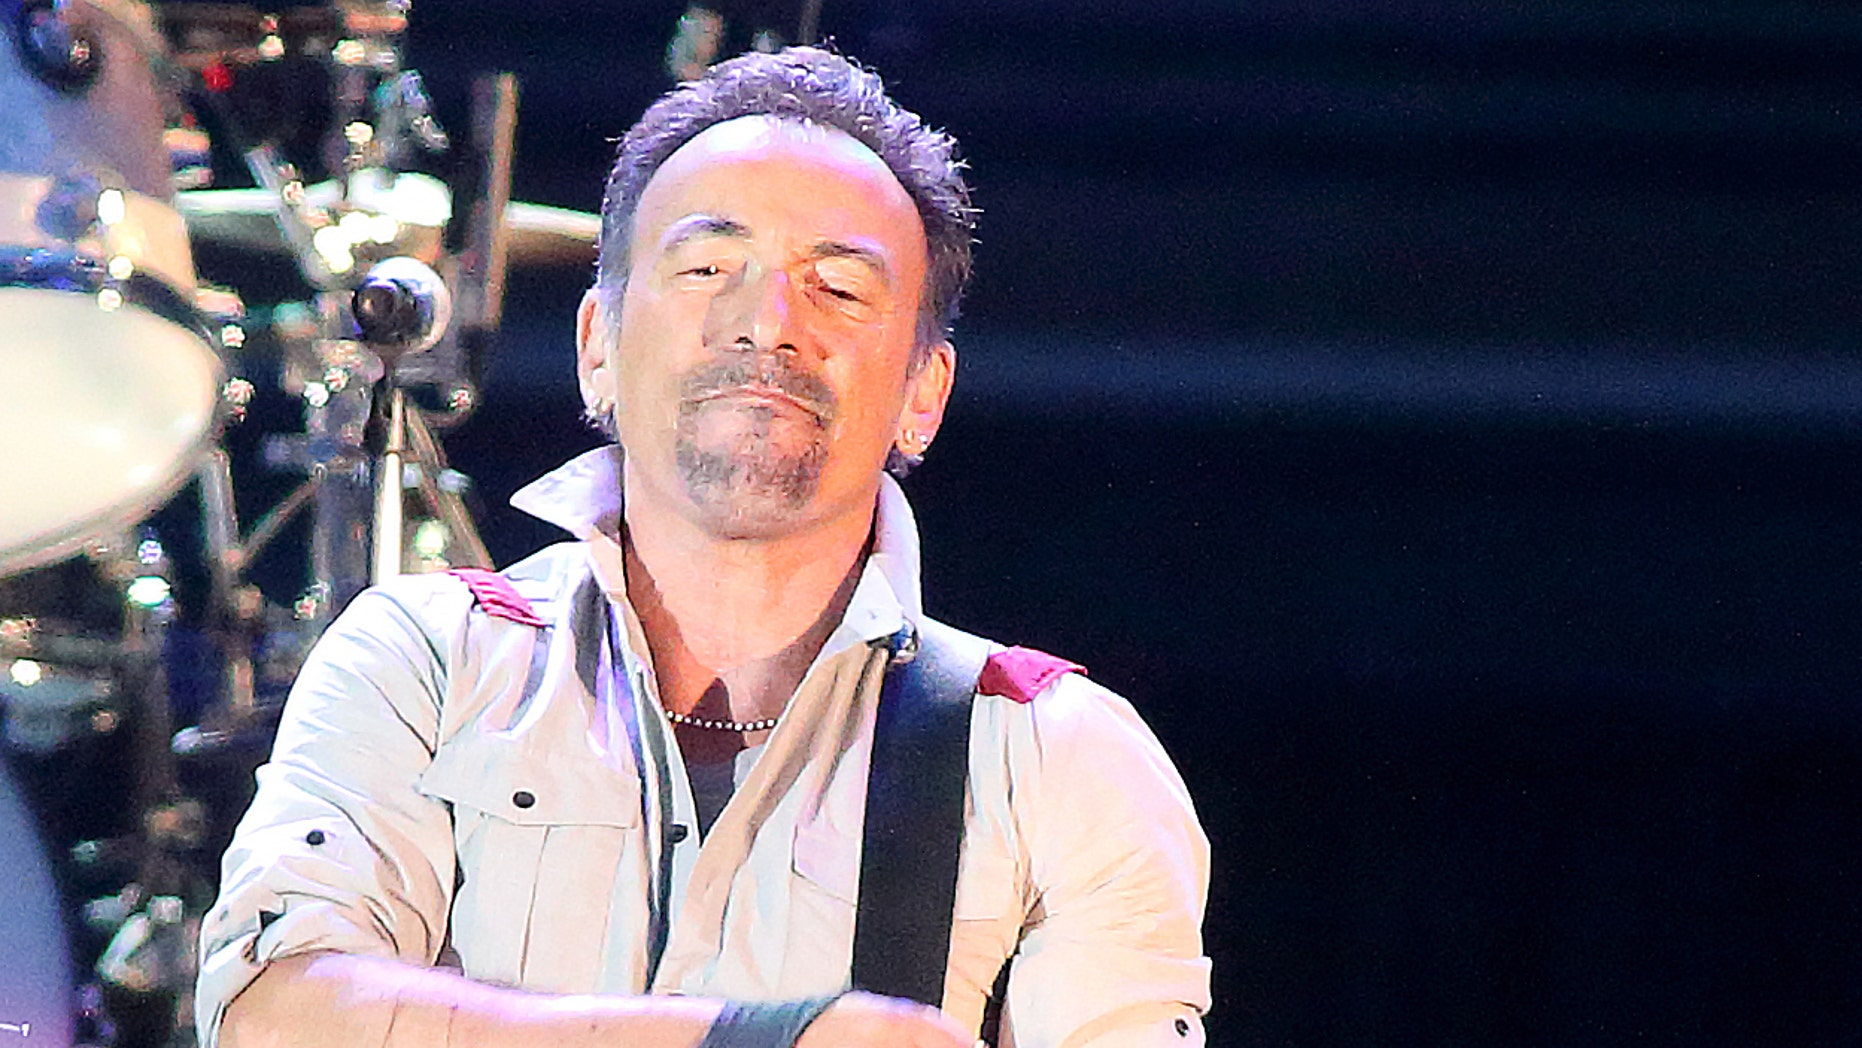 Bruce Springsteen and The E Street Band performs in concert during their High Hopes Tour at Hershey Stadium on Wednesday, May 14, 2014, in Hershey, Pa.